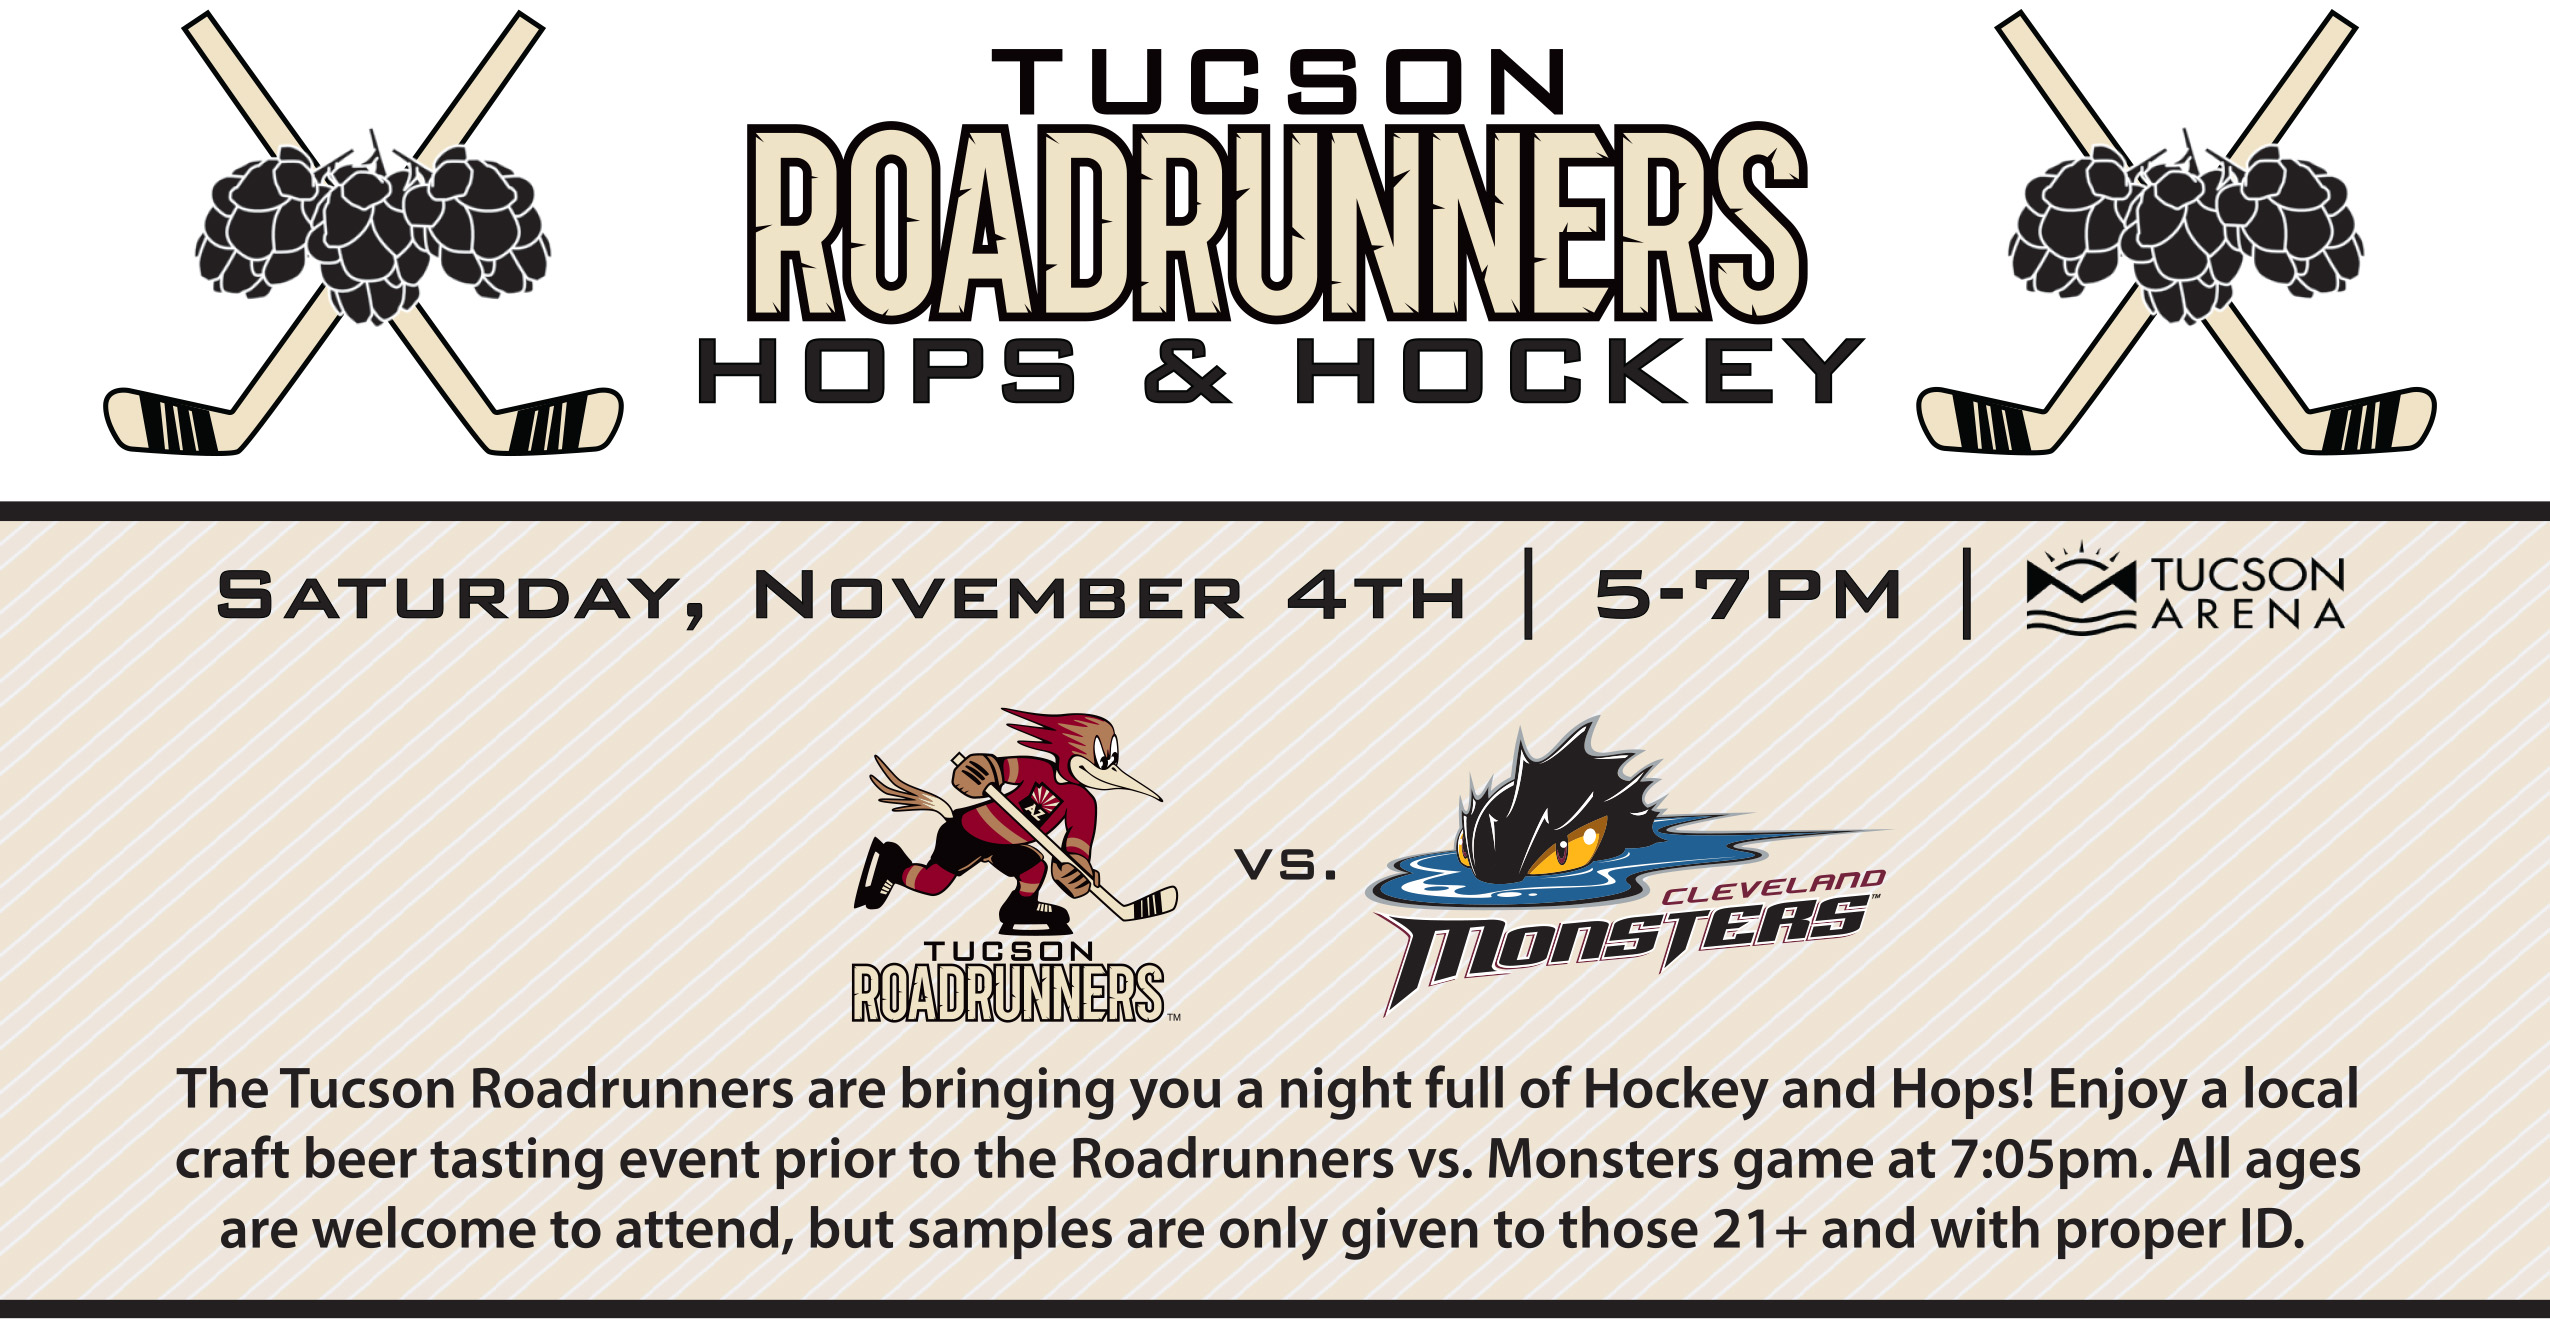 The Official Website Of The Tucson Roadrunners Roadrunners News